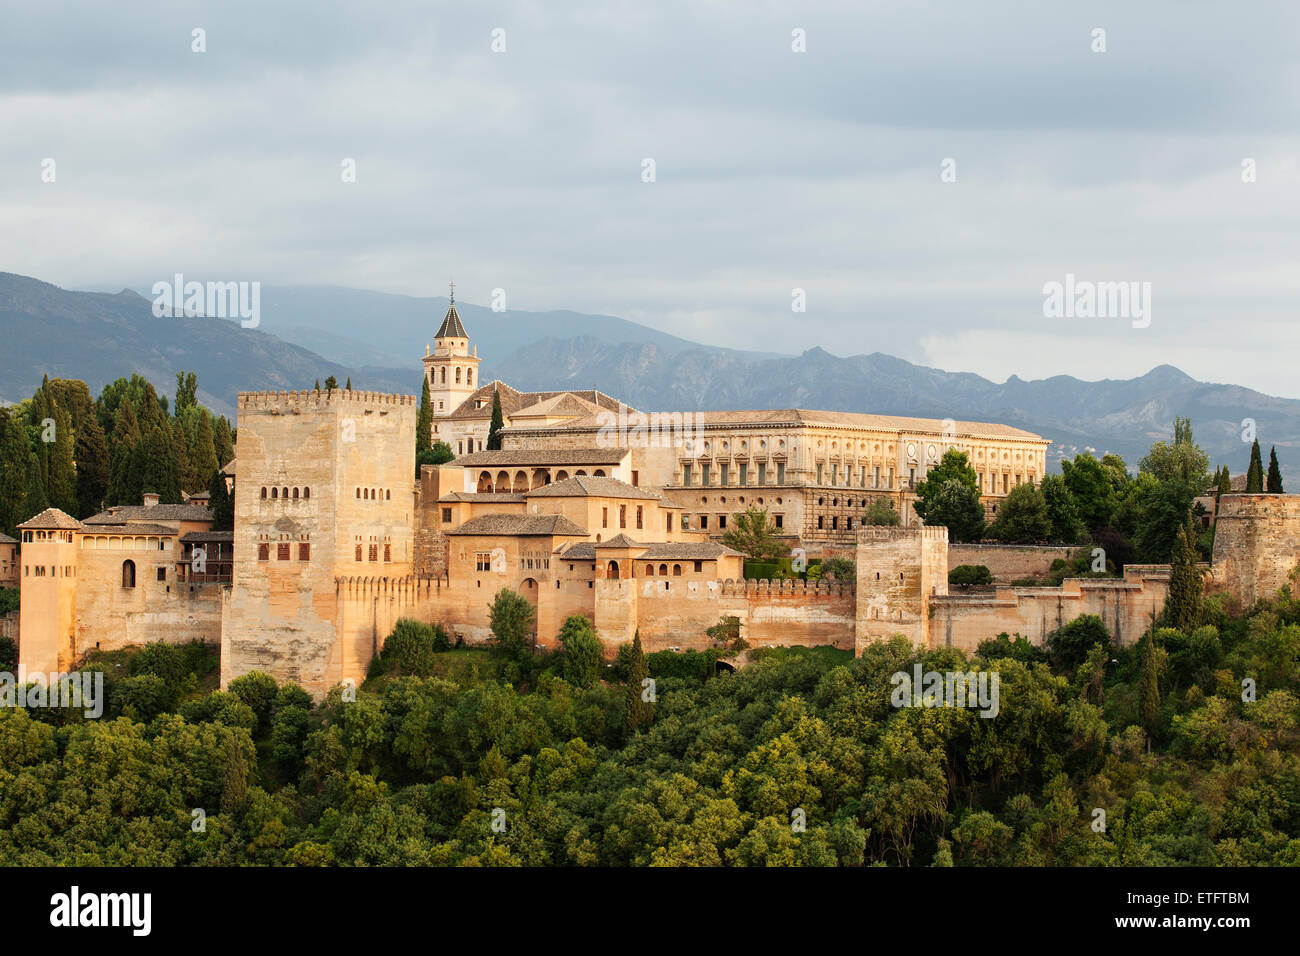 The Alhambra, Granada - Moorish palace Andalucia, Spain - Stock Image